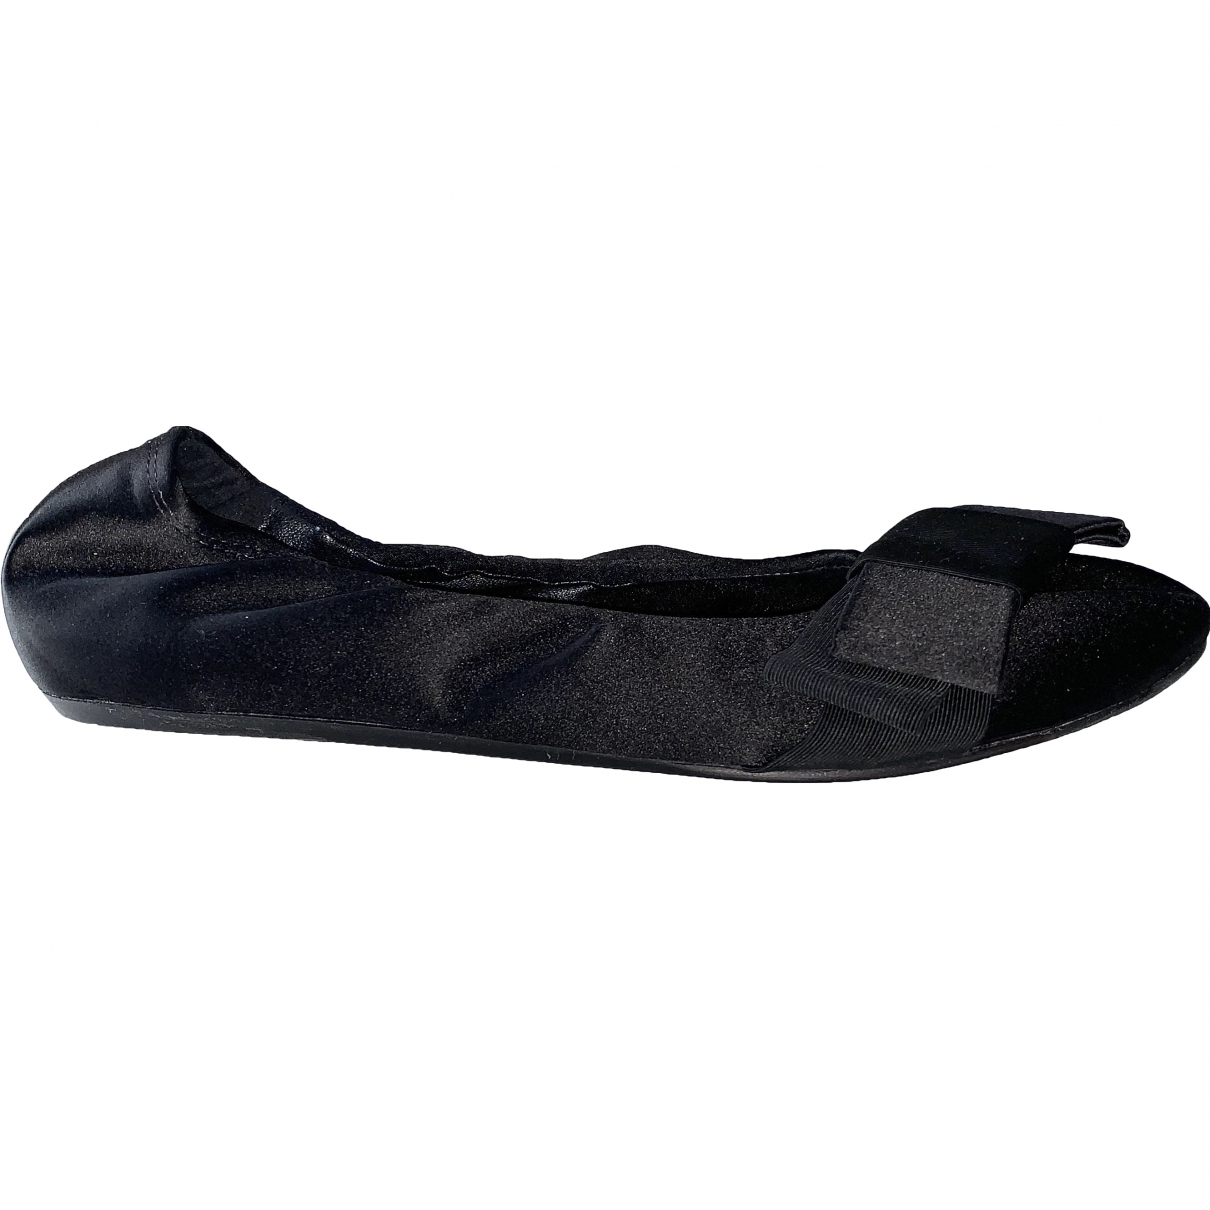 Lanvin \N Black Ballet flats for Women 38 EU